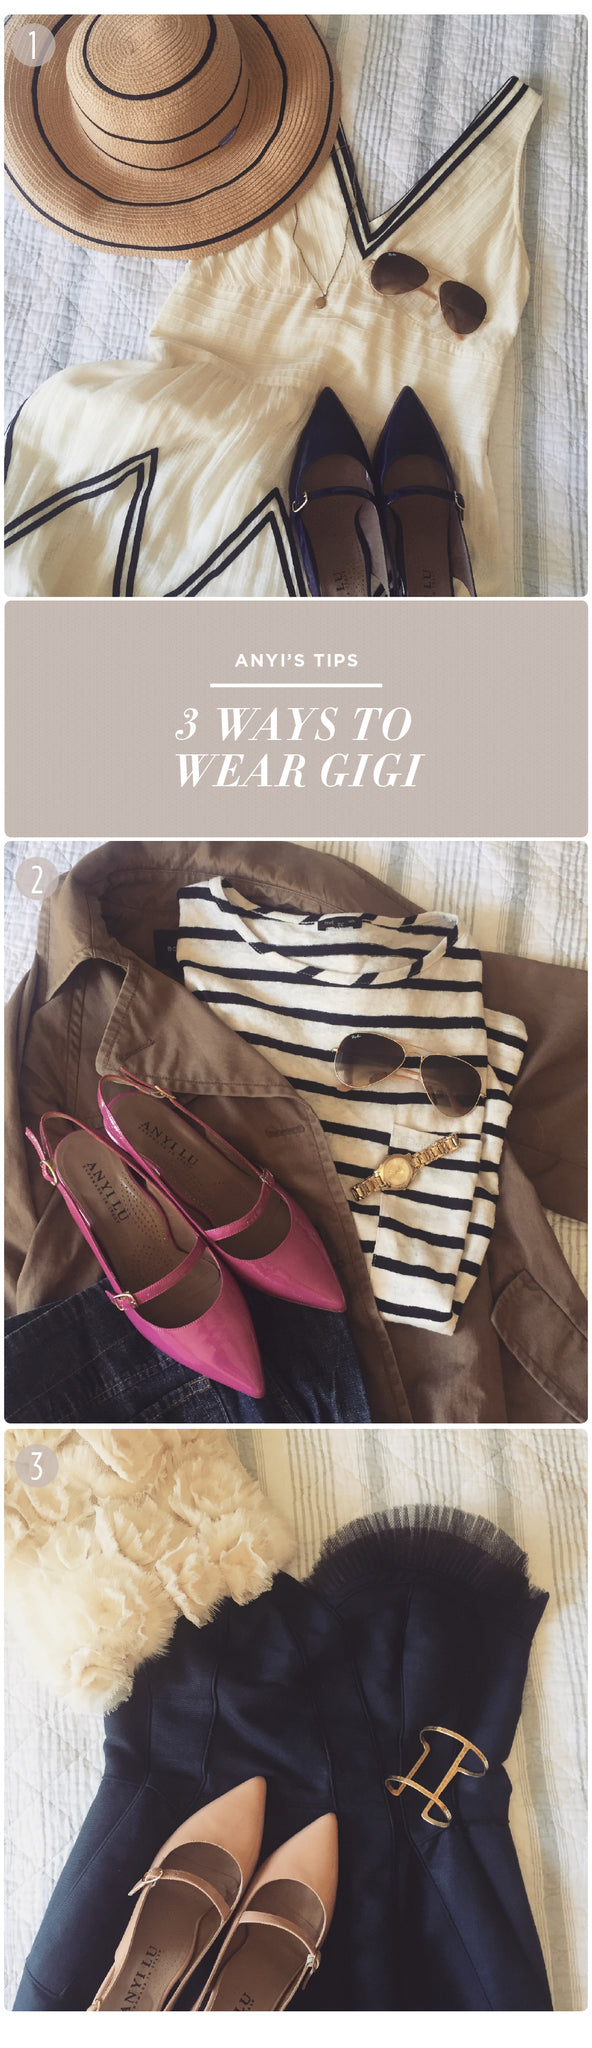 News Happenings Page 4 Anyi Lu Inside Wedges Jemma Black In Honor Of The Gigi Appearing This 15th Anniversary Issue Omagazine Weve Styled Her Three Ways